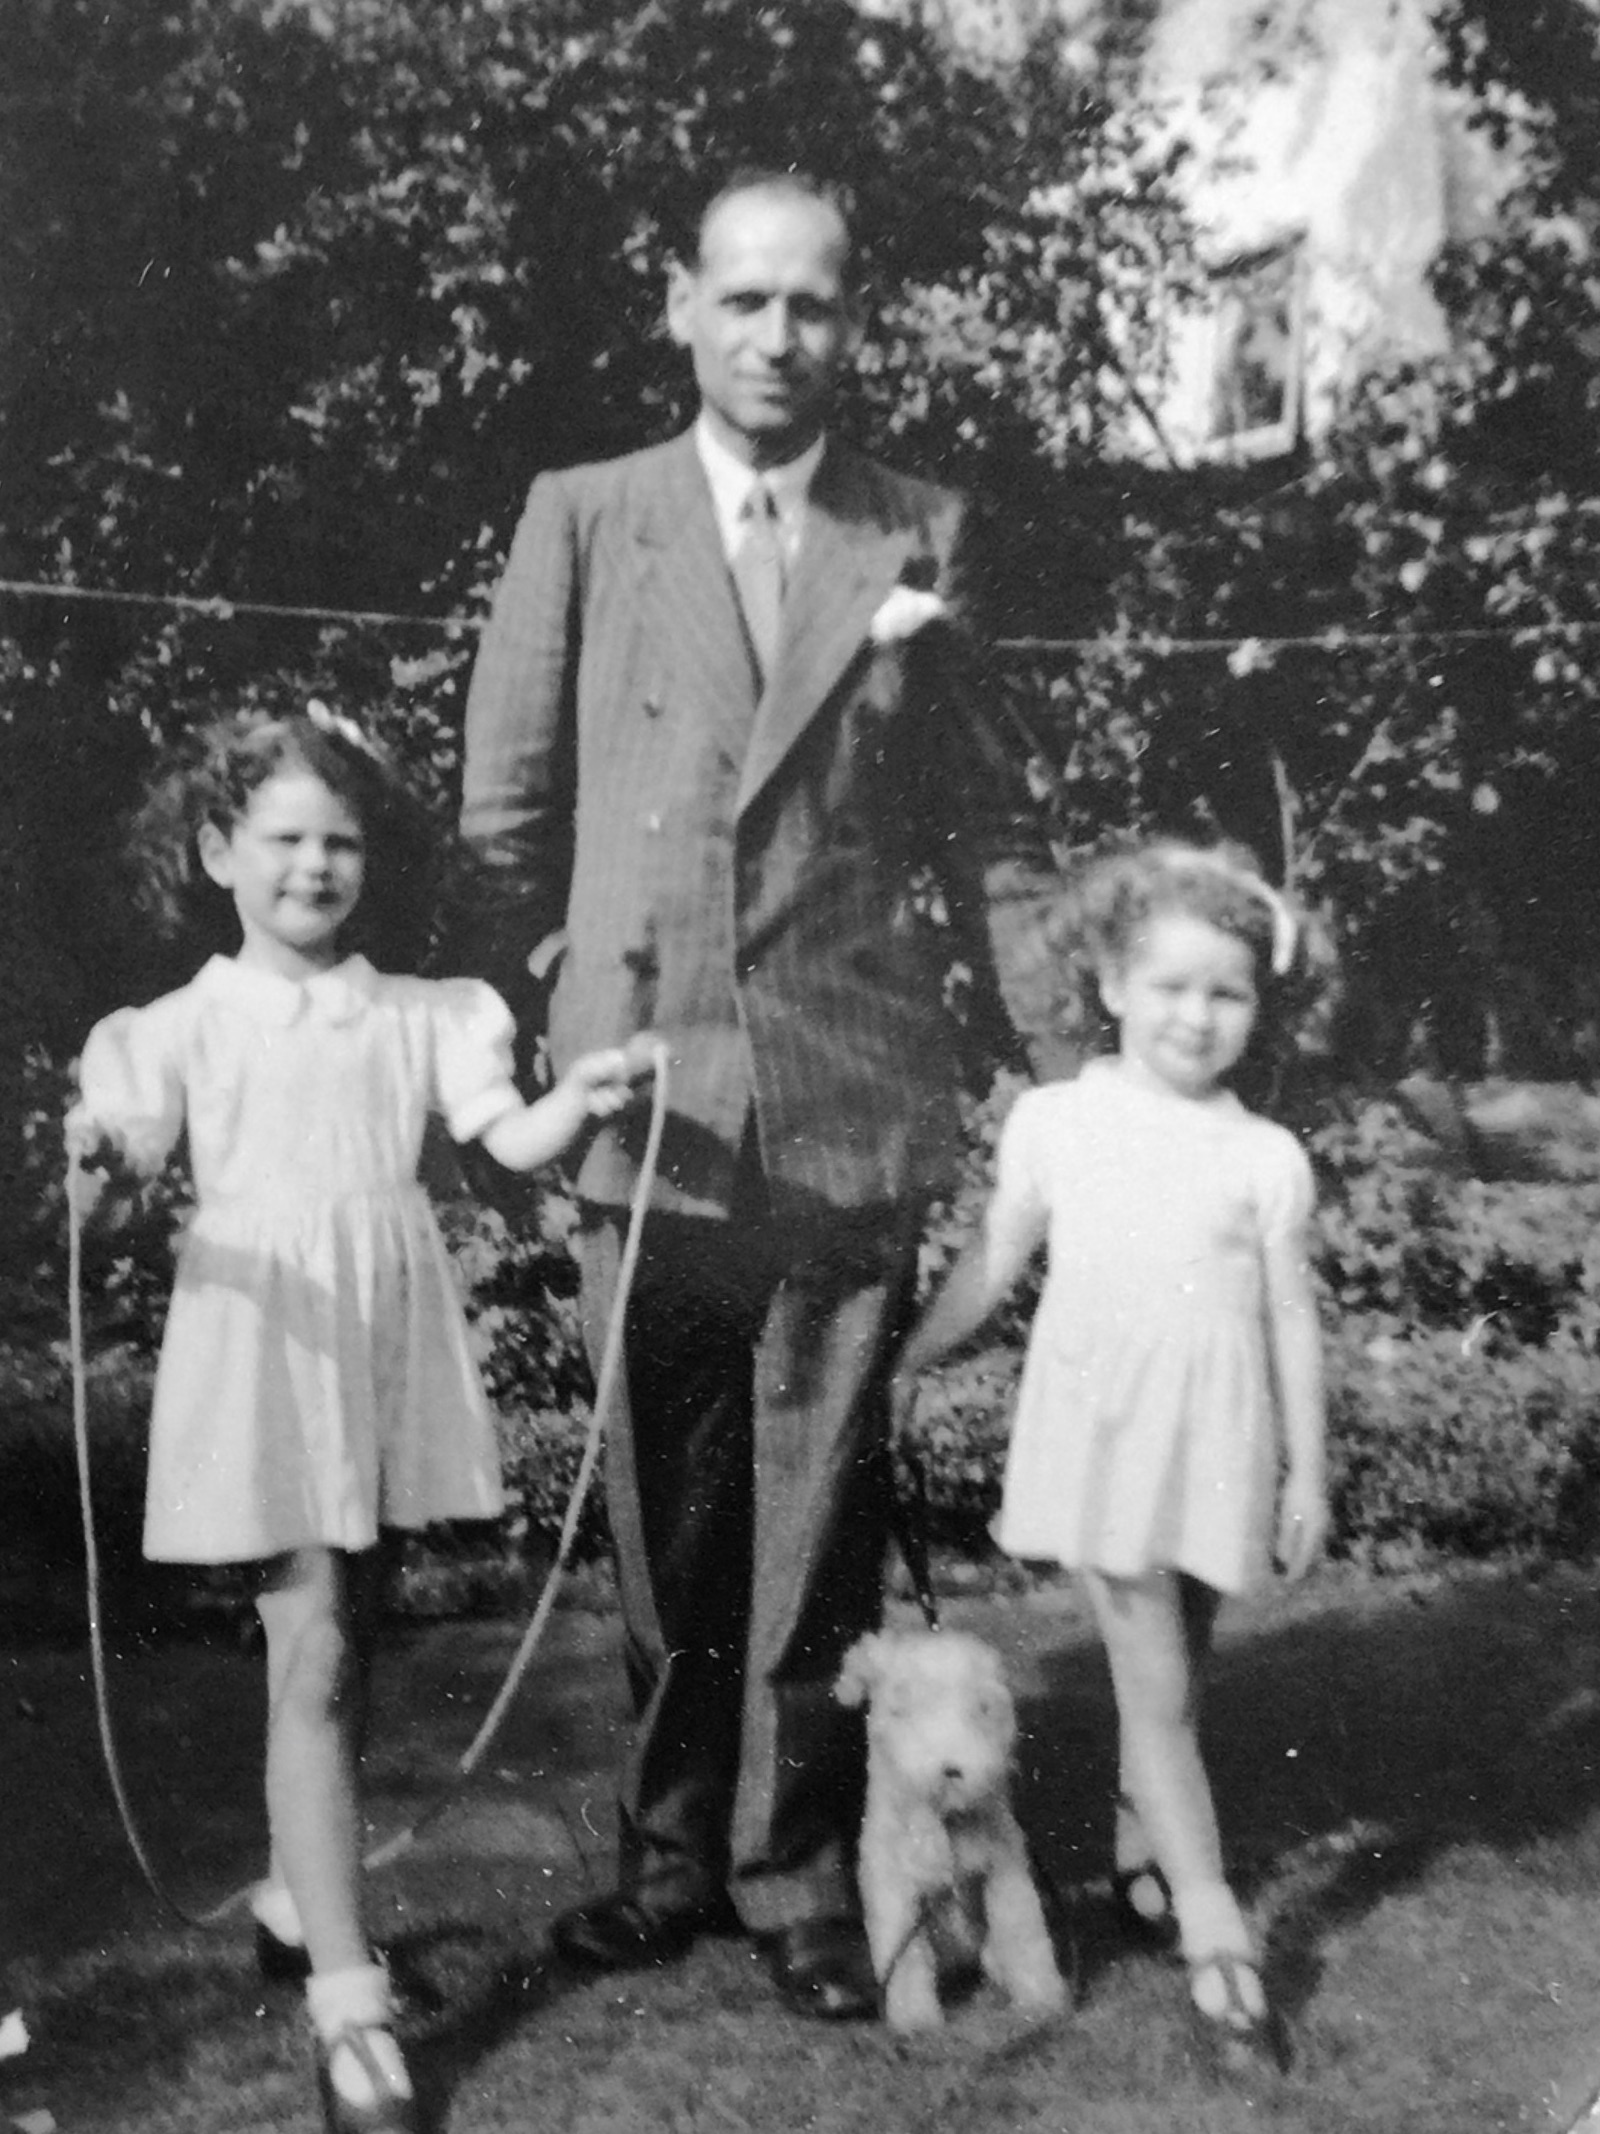 Leslie Amlot with his two daughters.